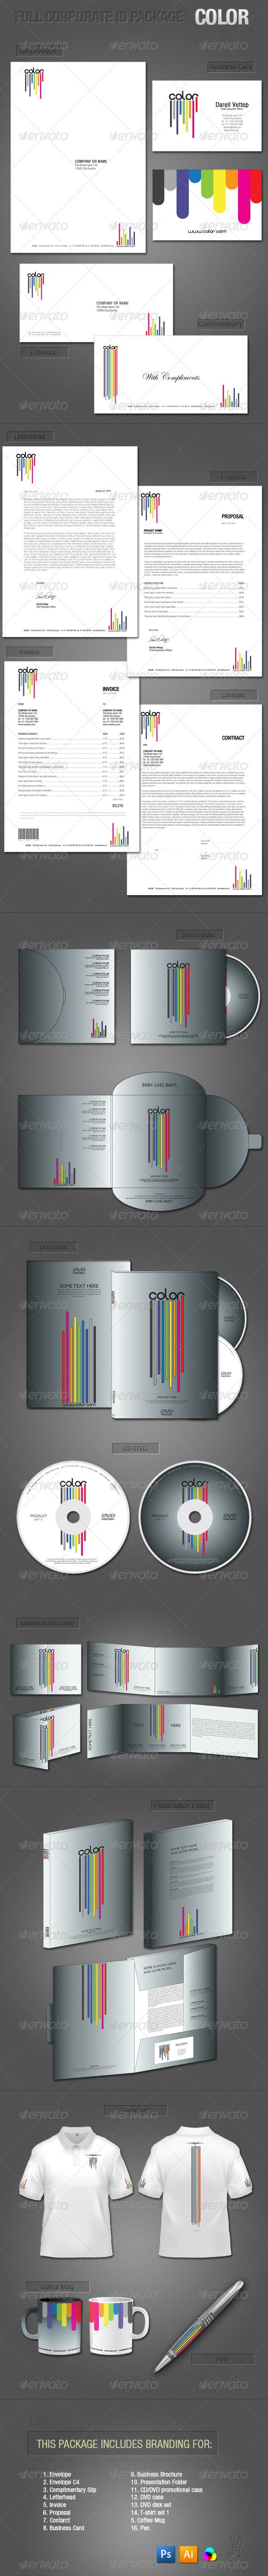 Full Corporate ID Package - Color